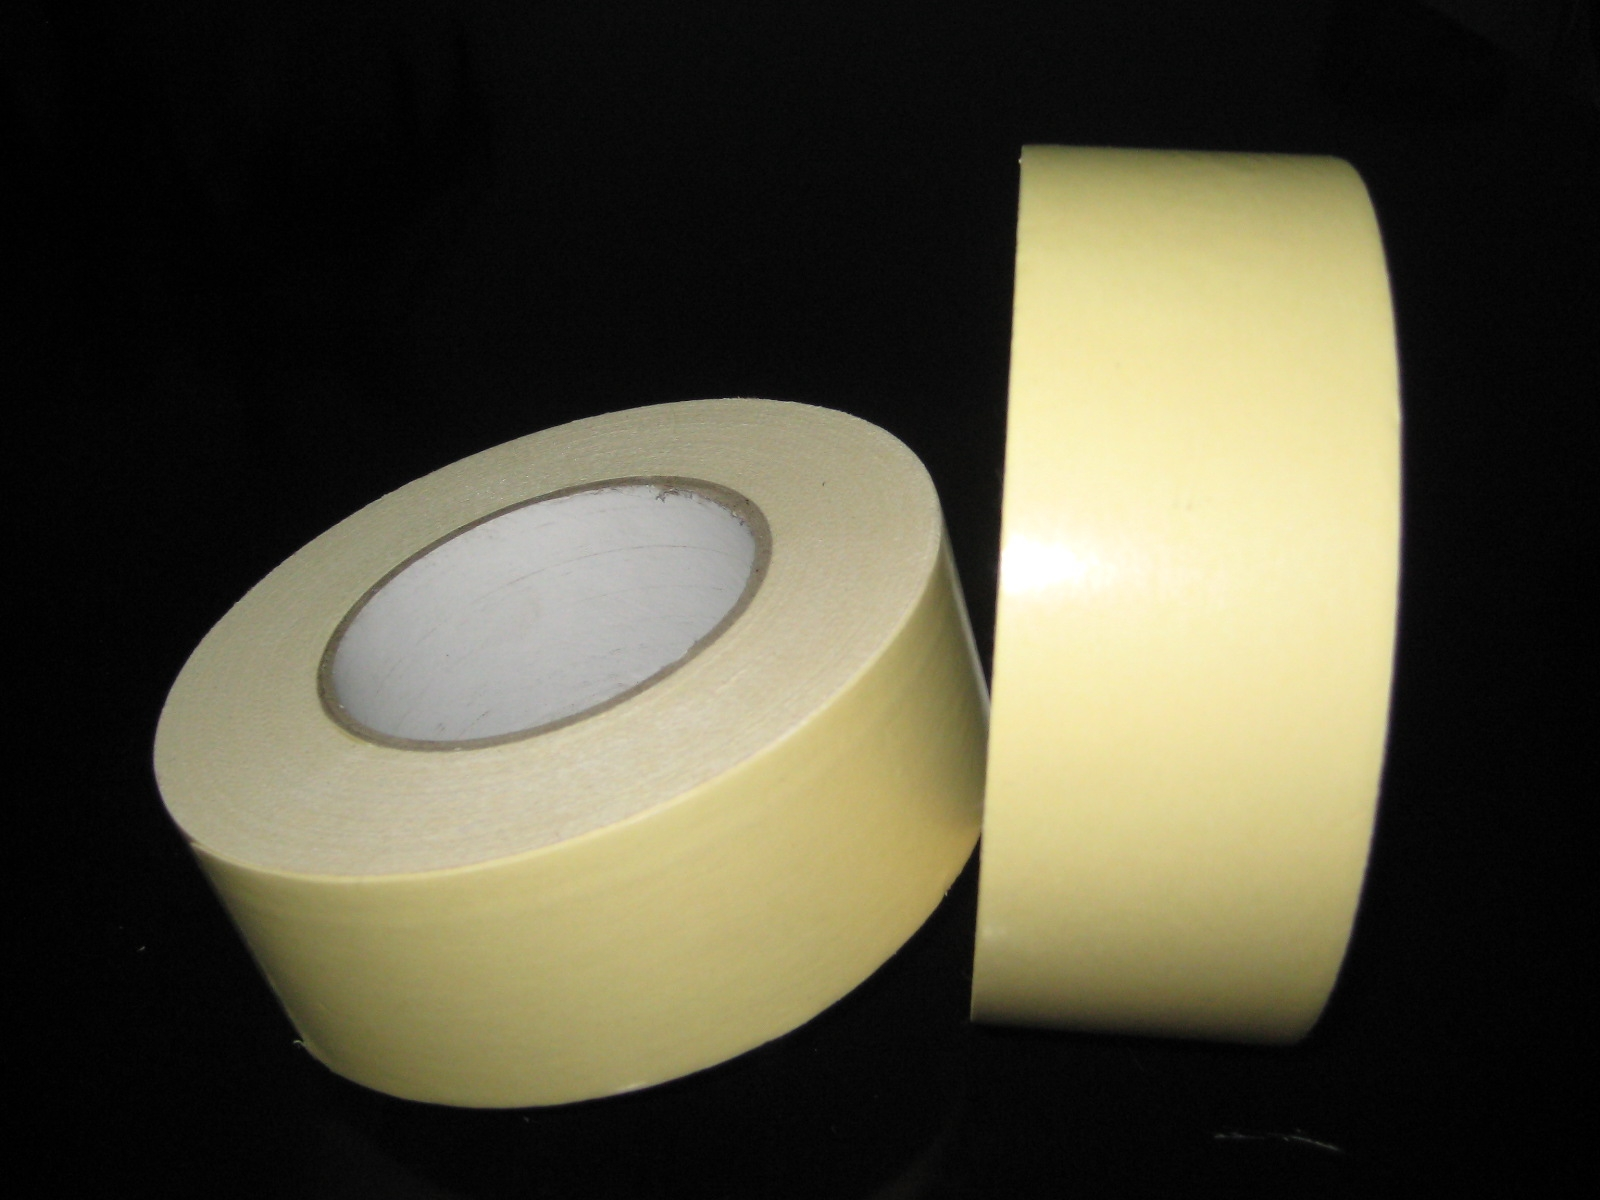 ClothDouble Sided Cloth Tape Tearable By Hand